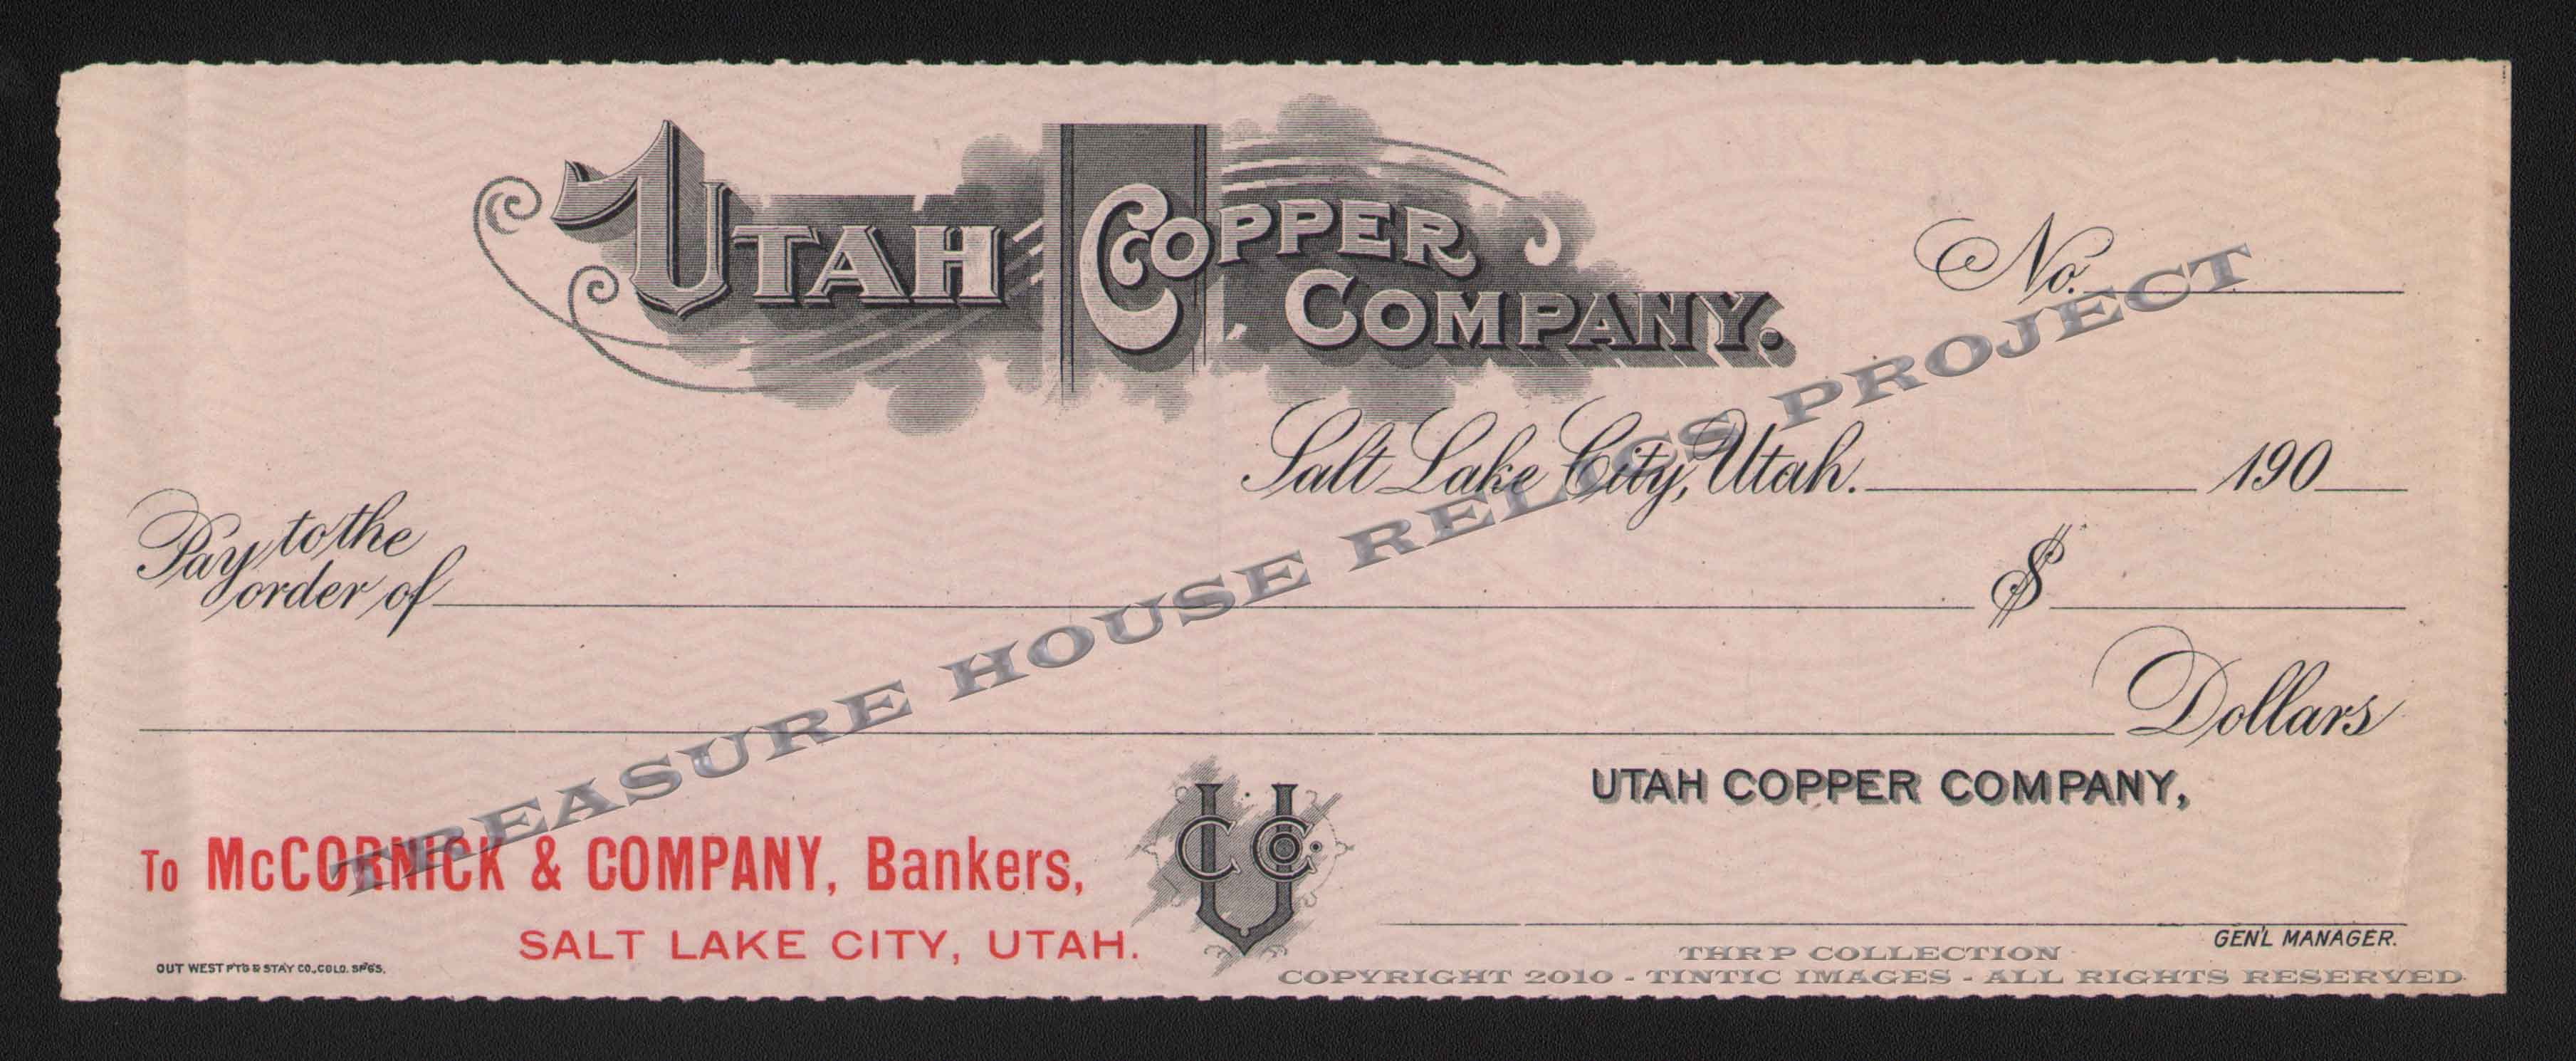 CHECK_-_UTAH_COPPER_CO_-_no_num_400_Inv_8690_THR_EMBOSS.jpg